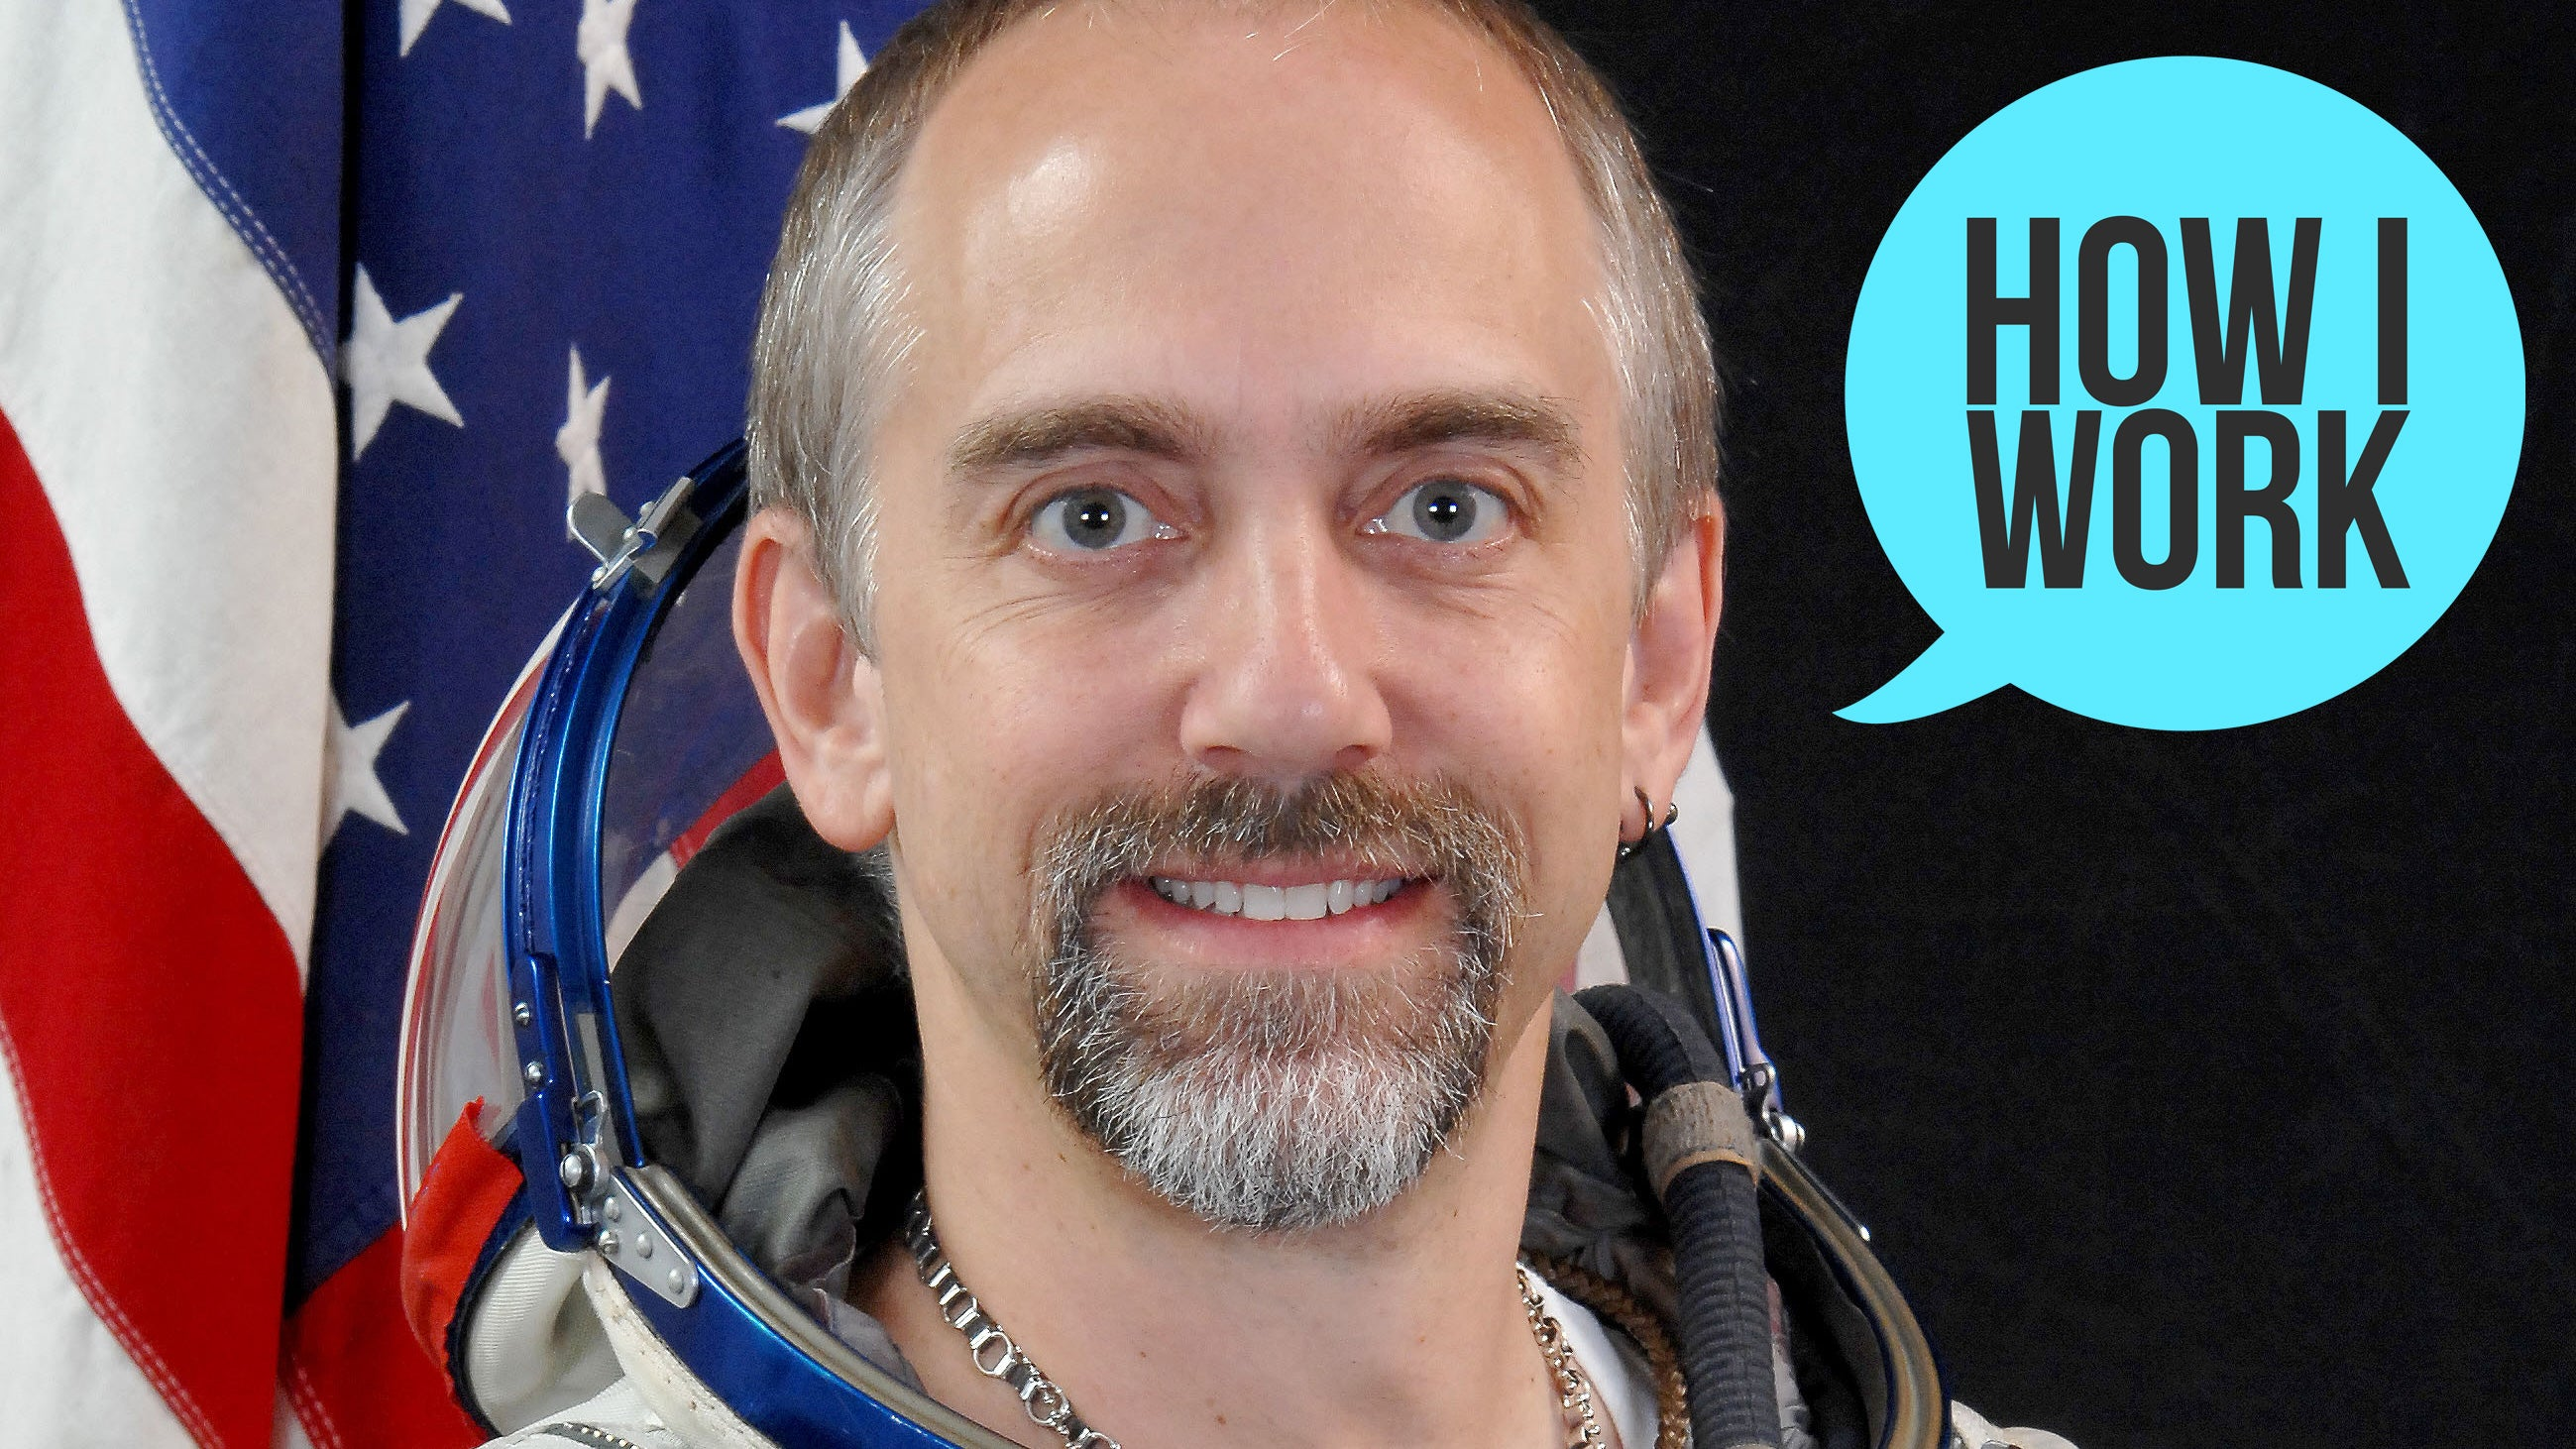 I'm Richard Garriott, Aka Lord British, And This Is How I Work